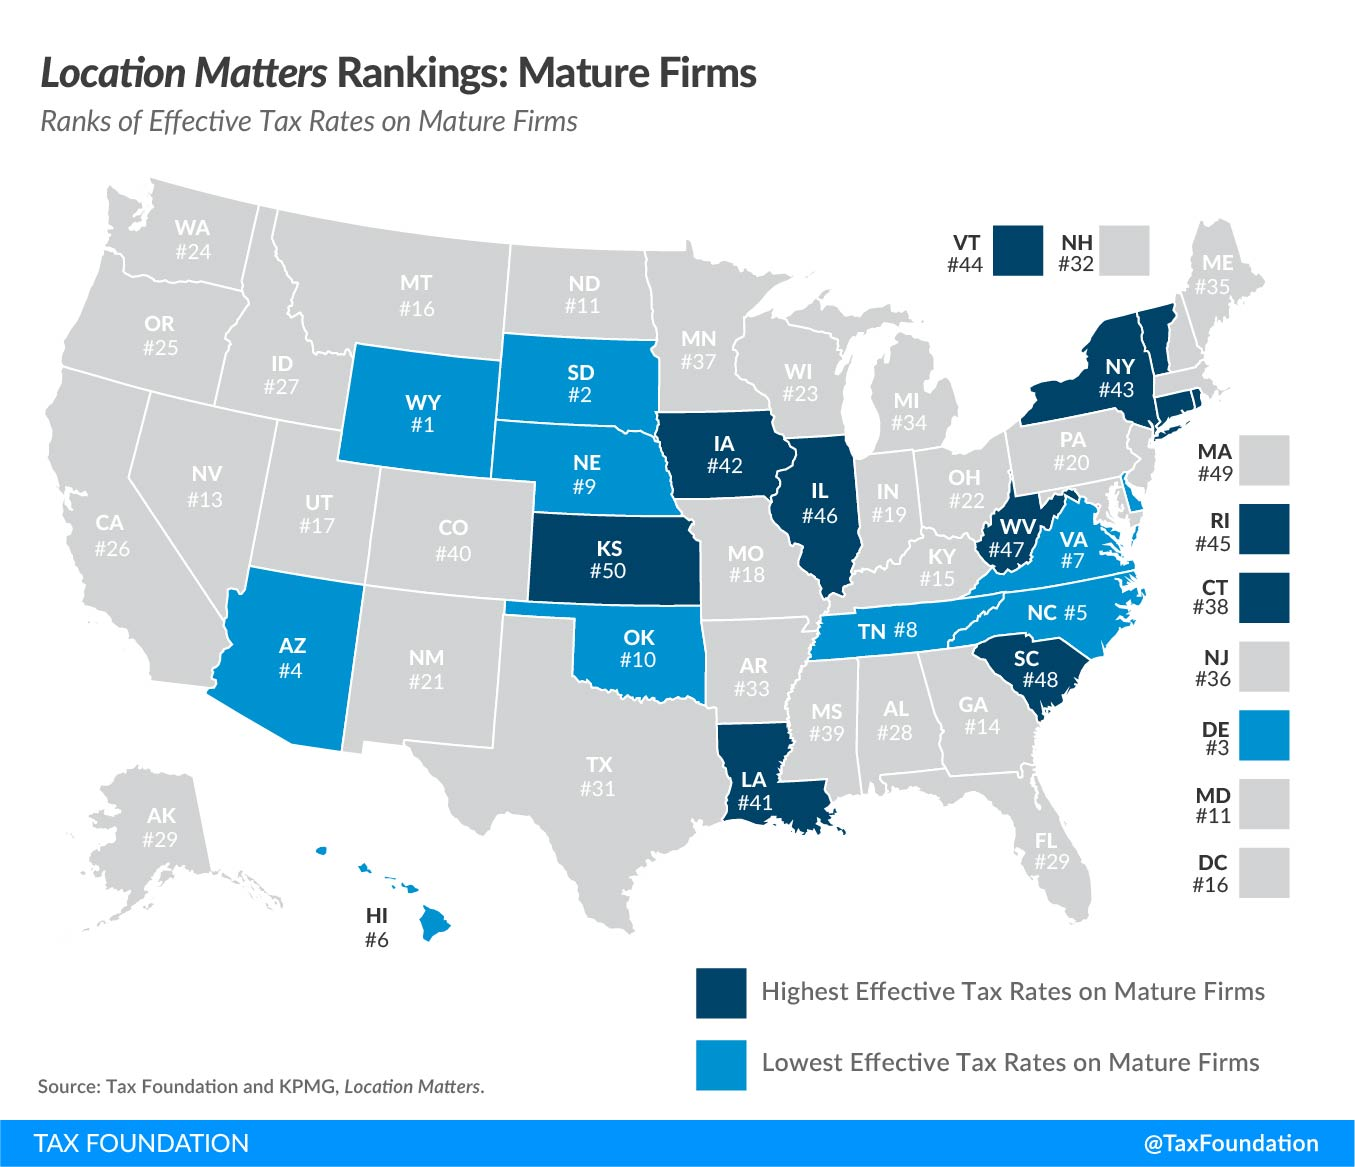 Location Matters 2021 State Tax Competitiveness Tax Incentives Mature Firms Rankings